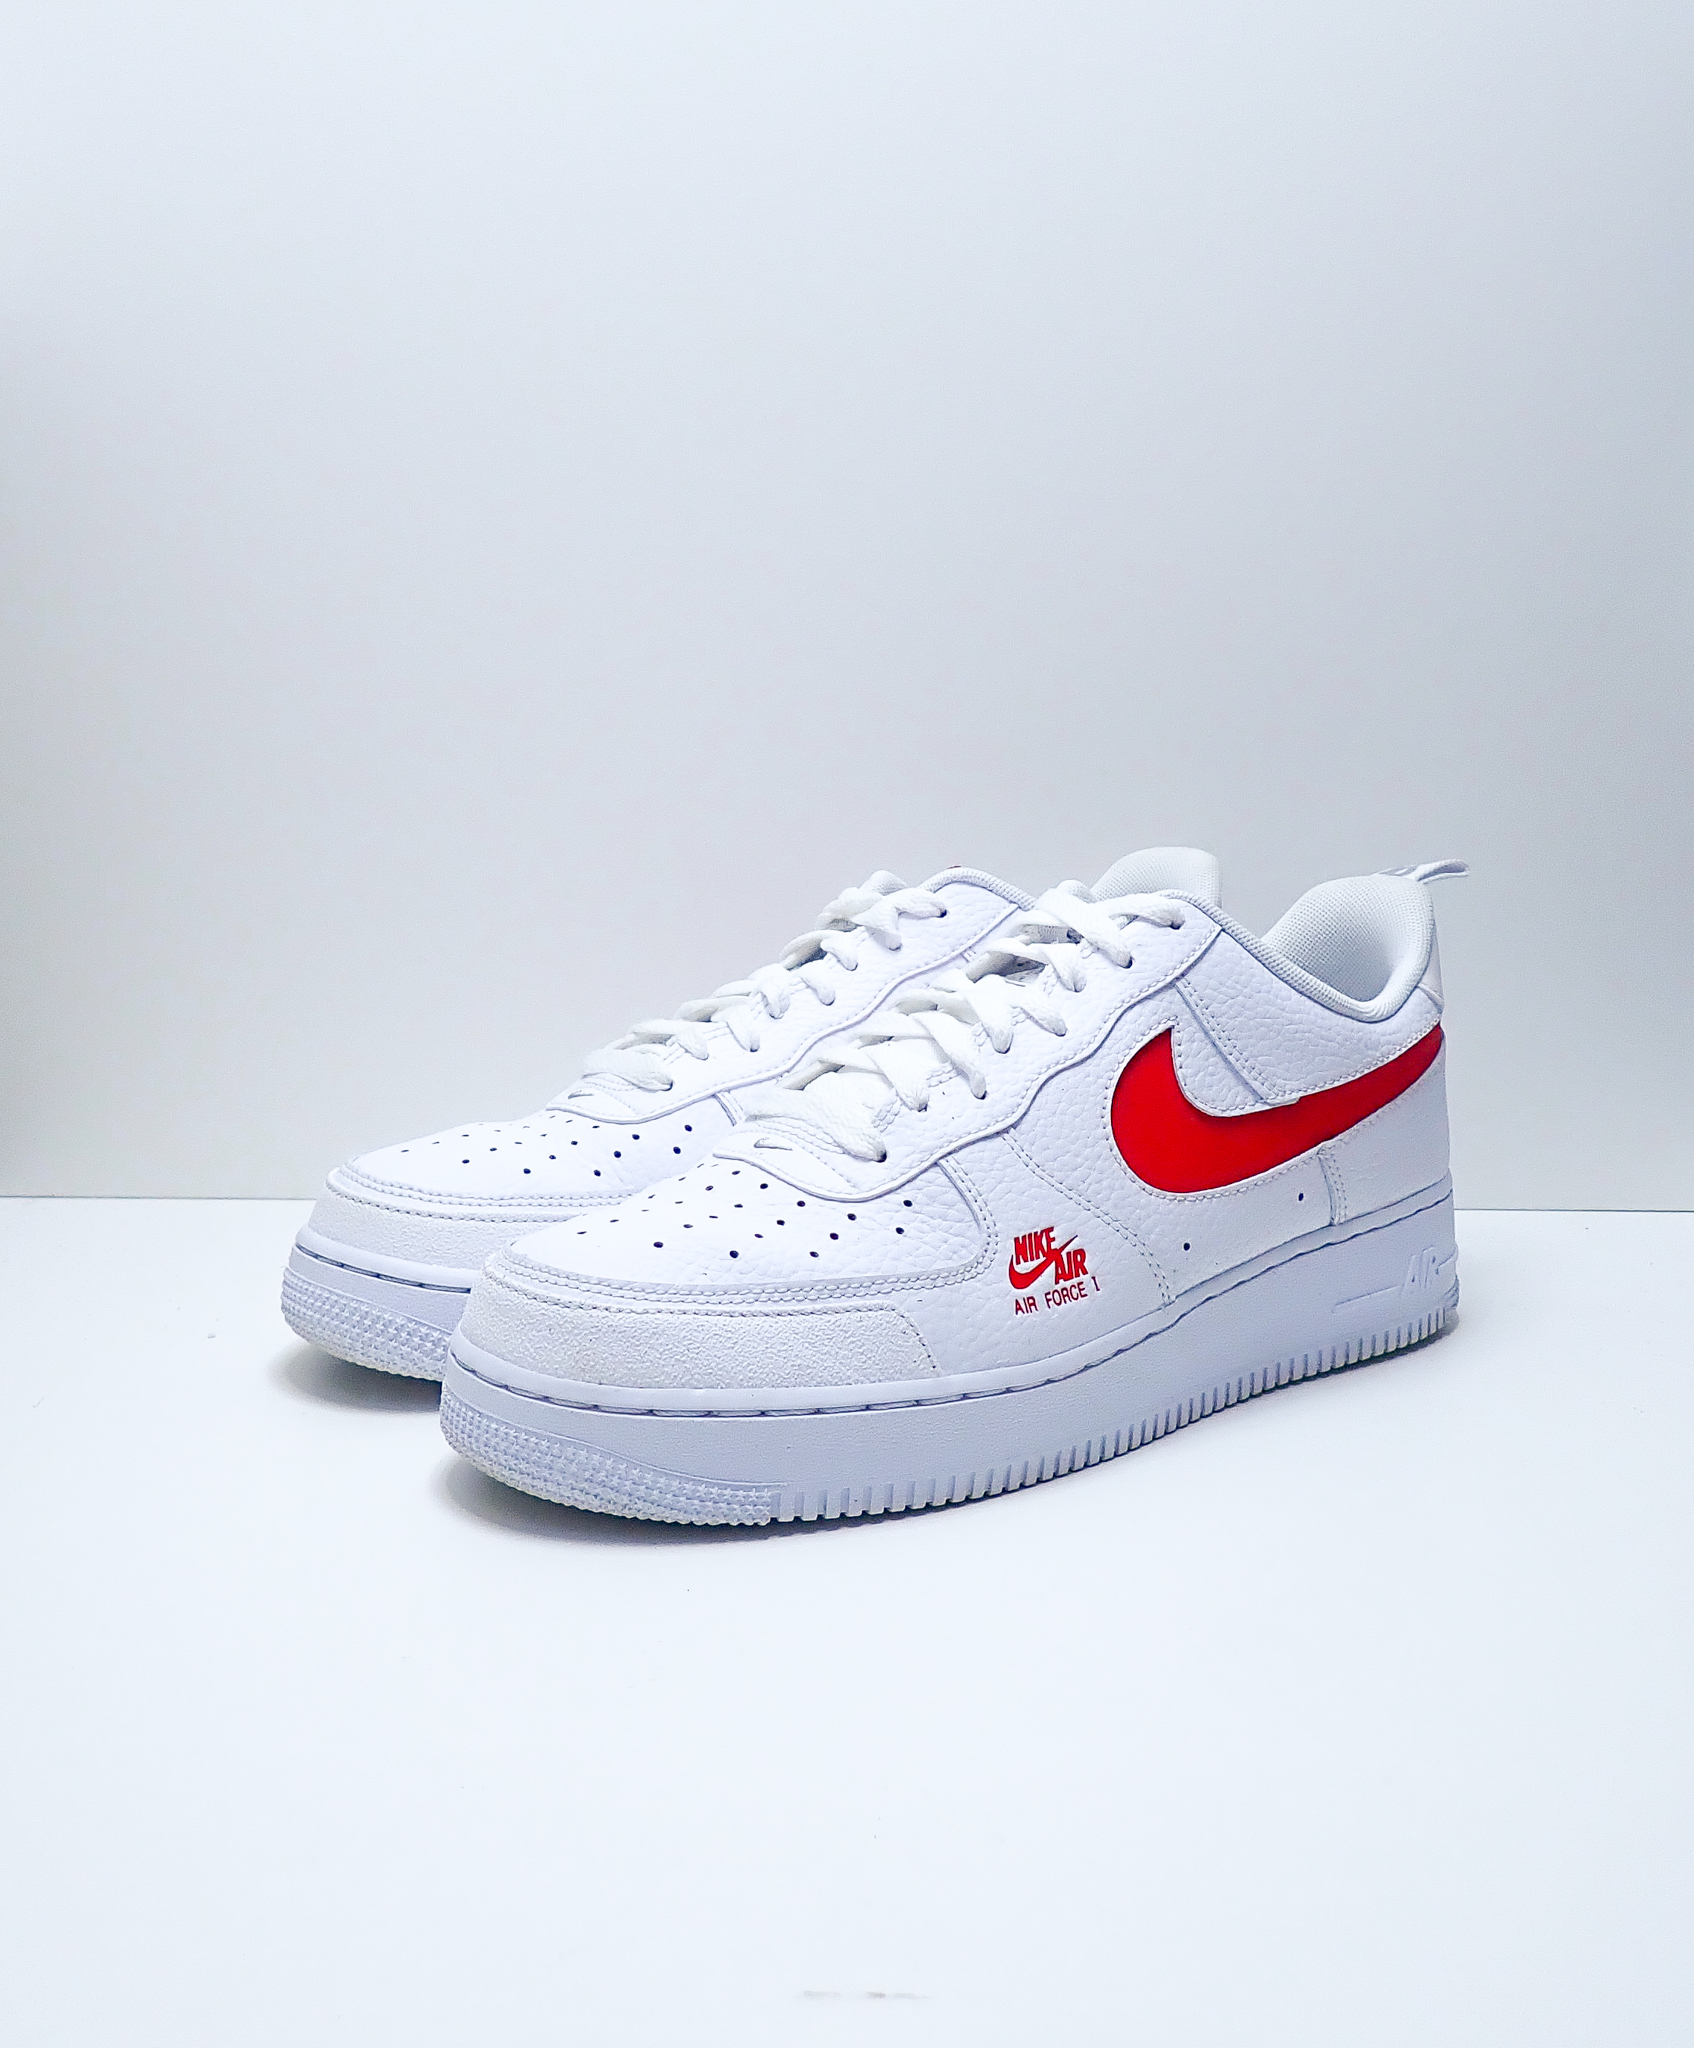 Nike Air Force 1 Low Utility White/Red